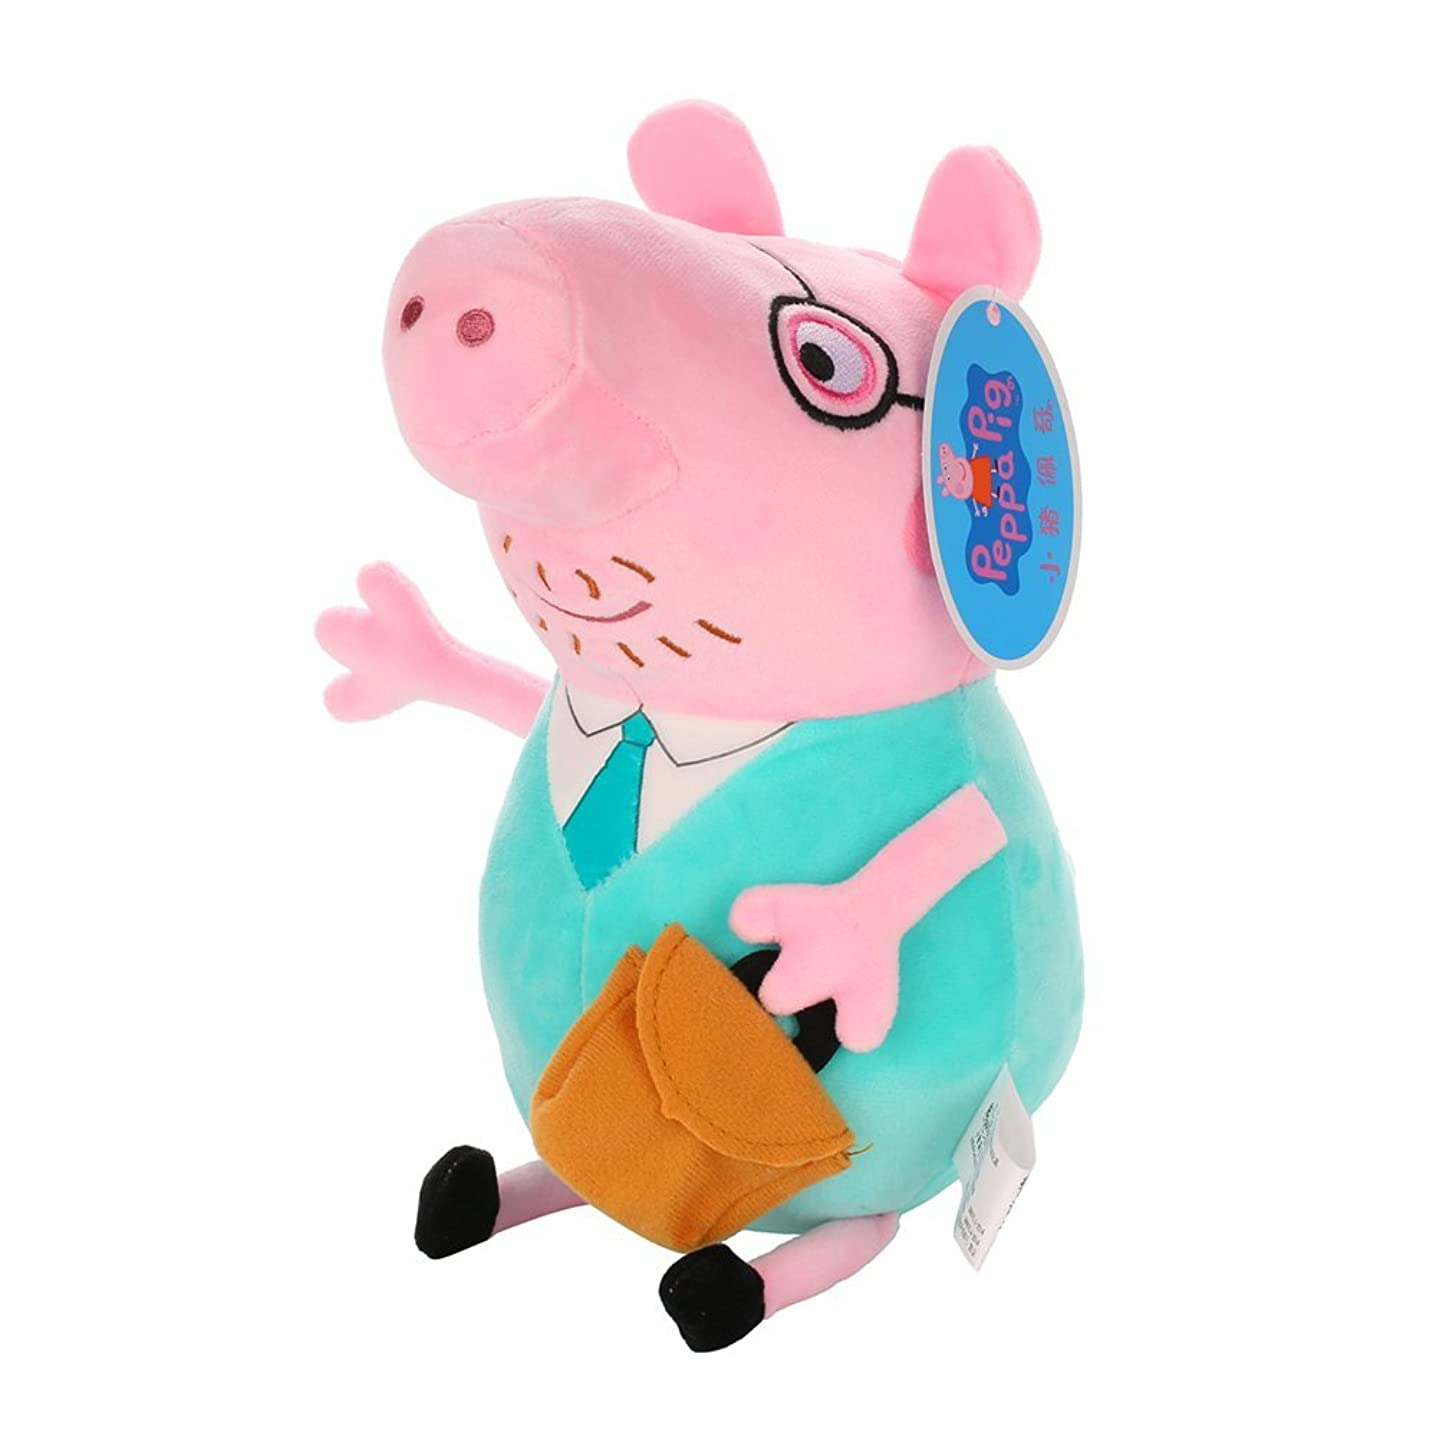 Peppa Pig Toy Figures Plush Toys Authentic 16 Characters Peppa Family & 8 Friends Stuffed Toys Pendant George Pig Best Gift for Children (12